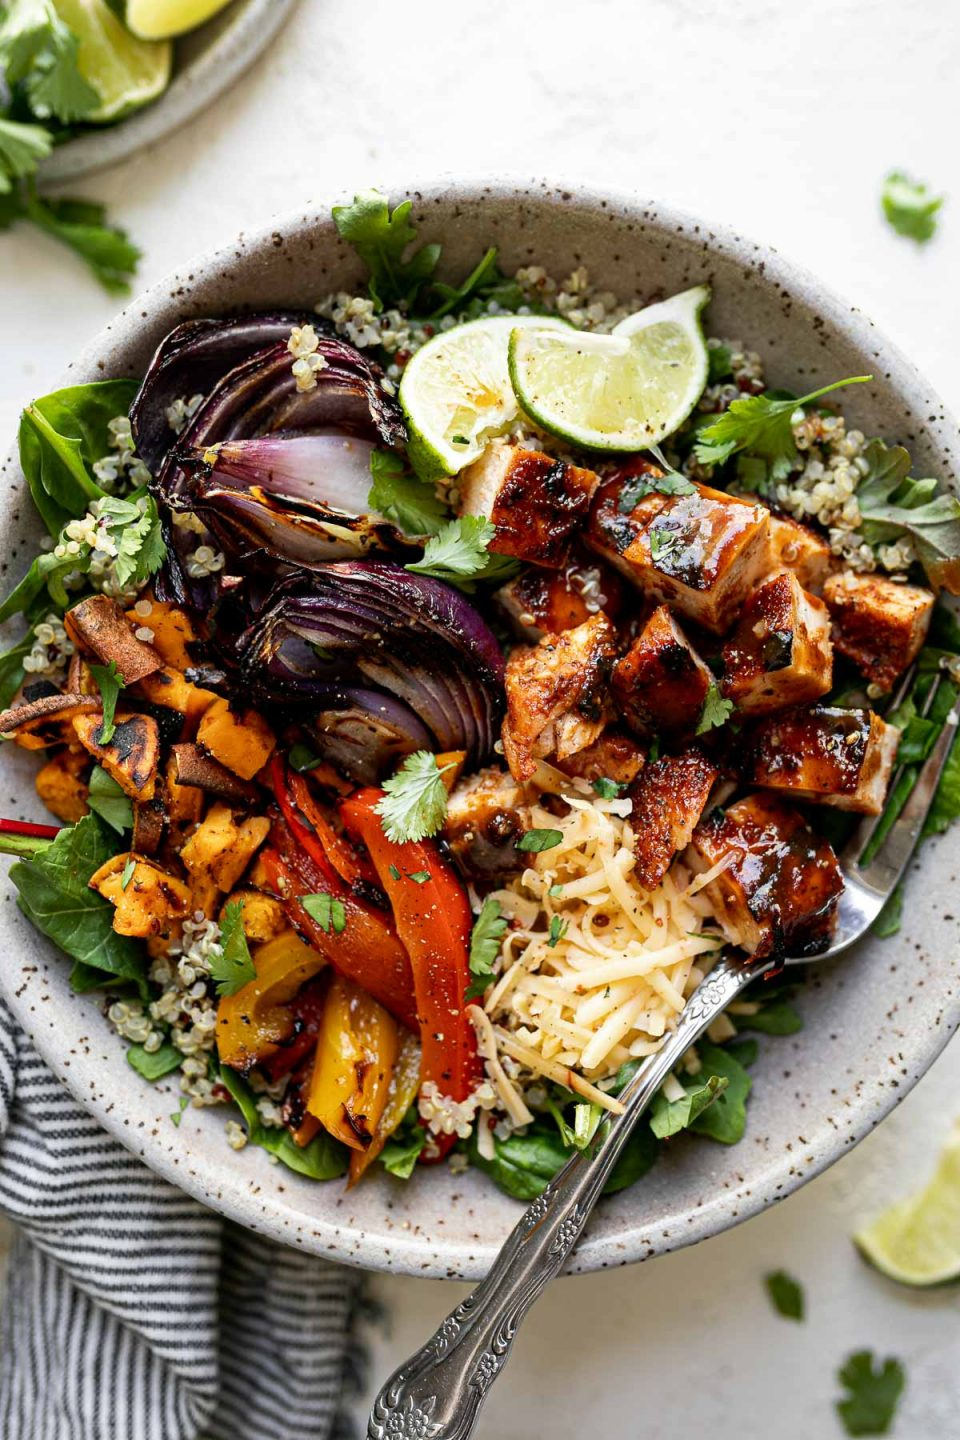 Grilled BBQ chicken bowl with diced BBQ chicken, grilled onions, sweet potatoes & bell peppers sitting atop a bed of greens & quinoa in a large speckled gray bowl. The bowl sits atop a white surface, surrounded by a striped gray linen napkin, cilantro leaves & lime wedges.